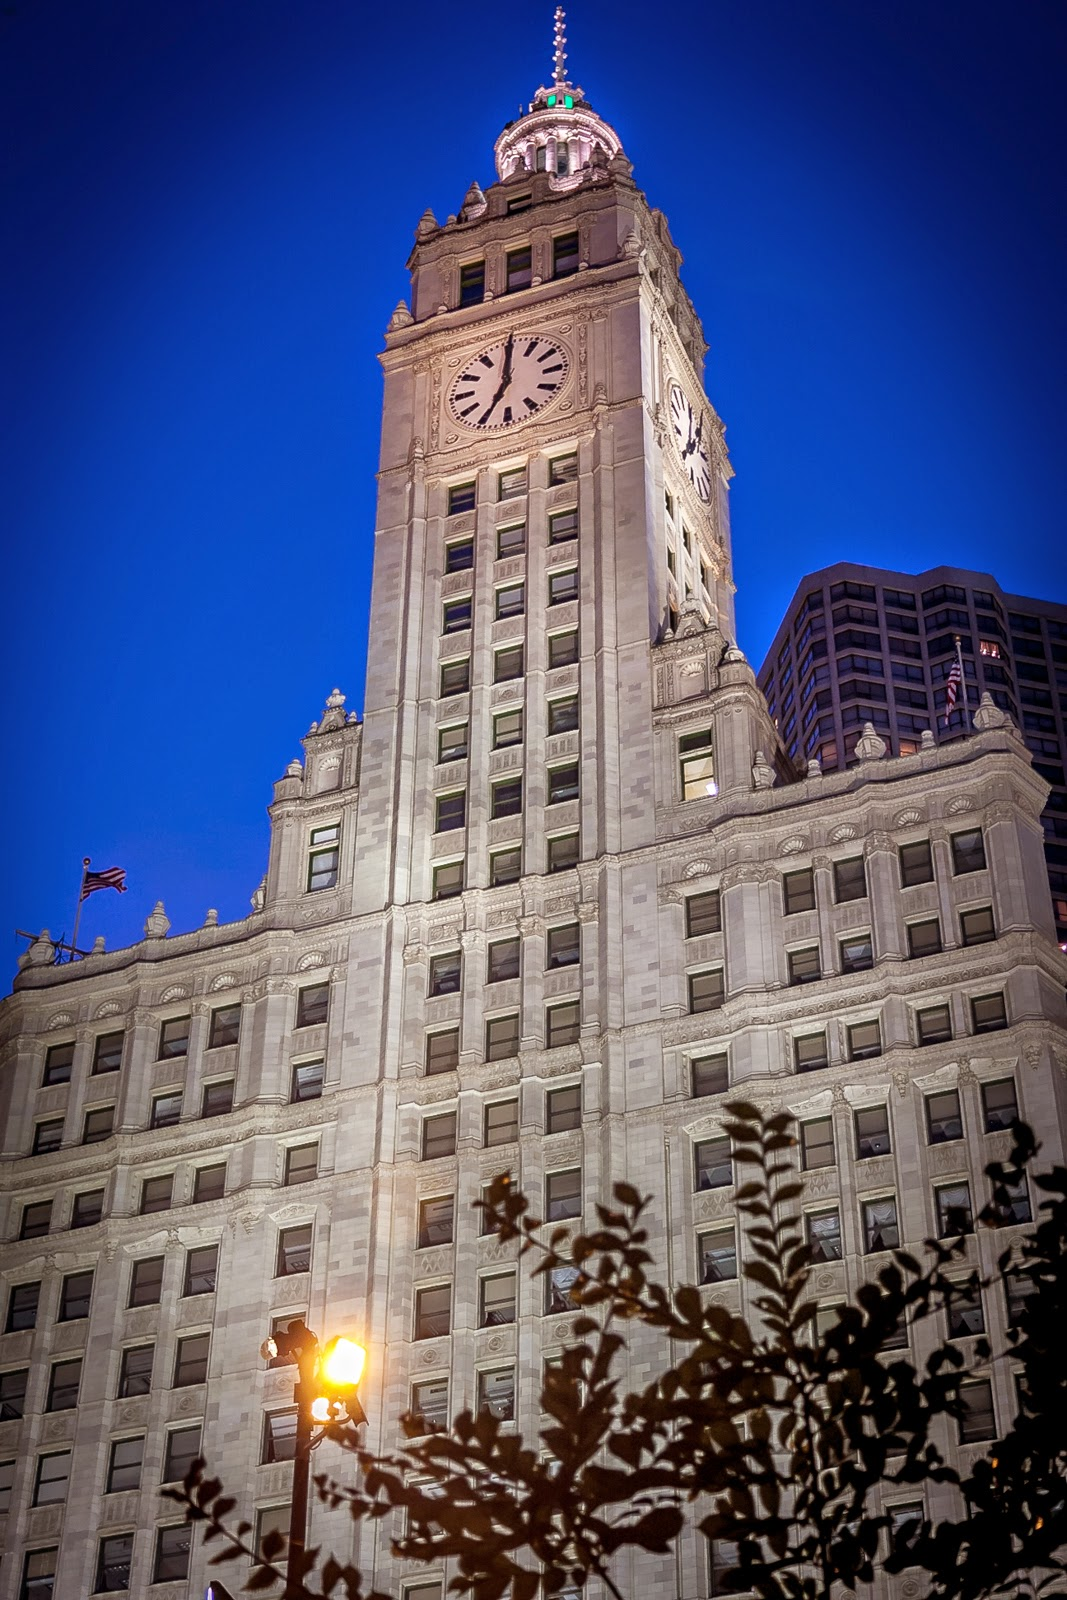 Wrigley Building - Chicago real estate photography, Chicago sports photography